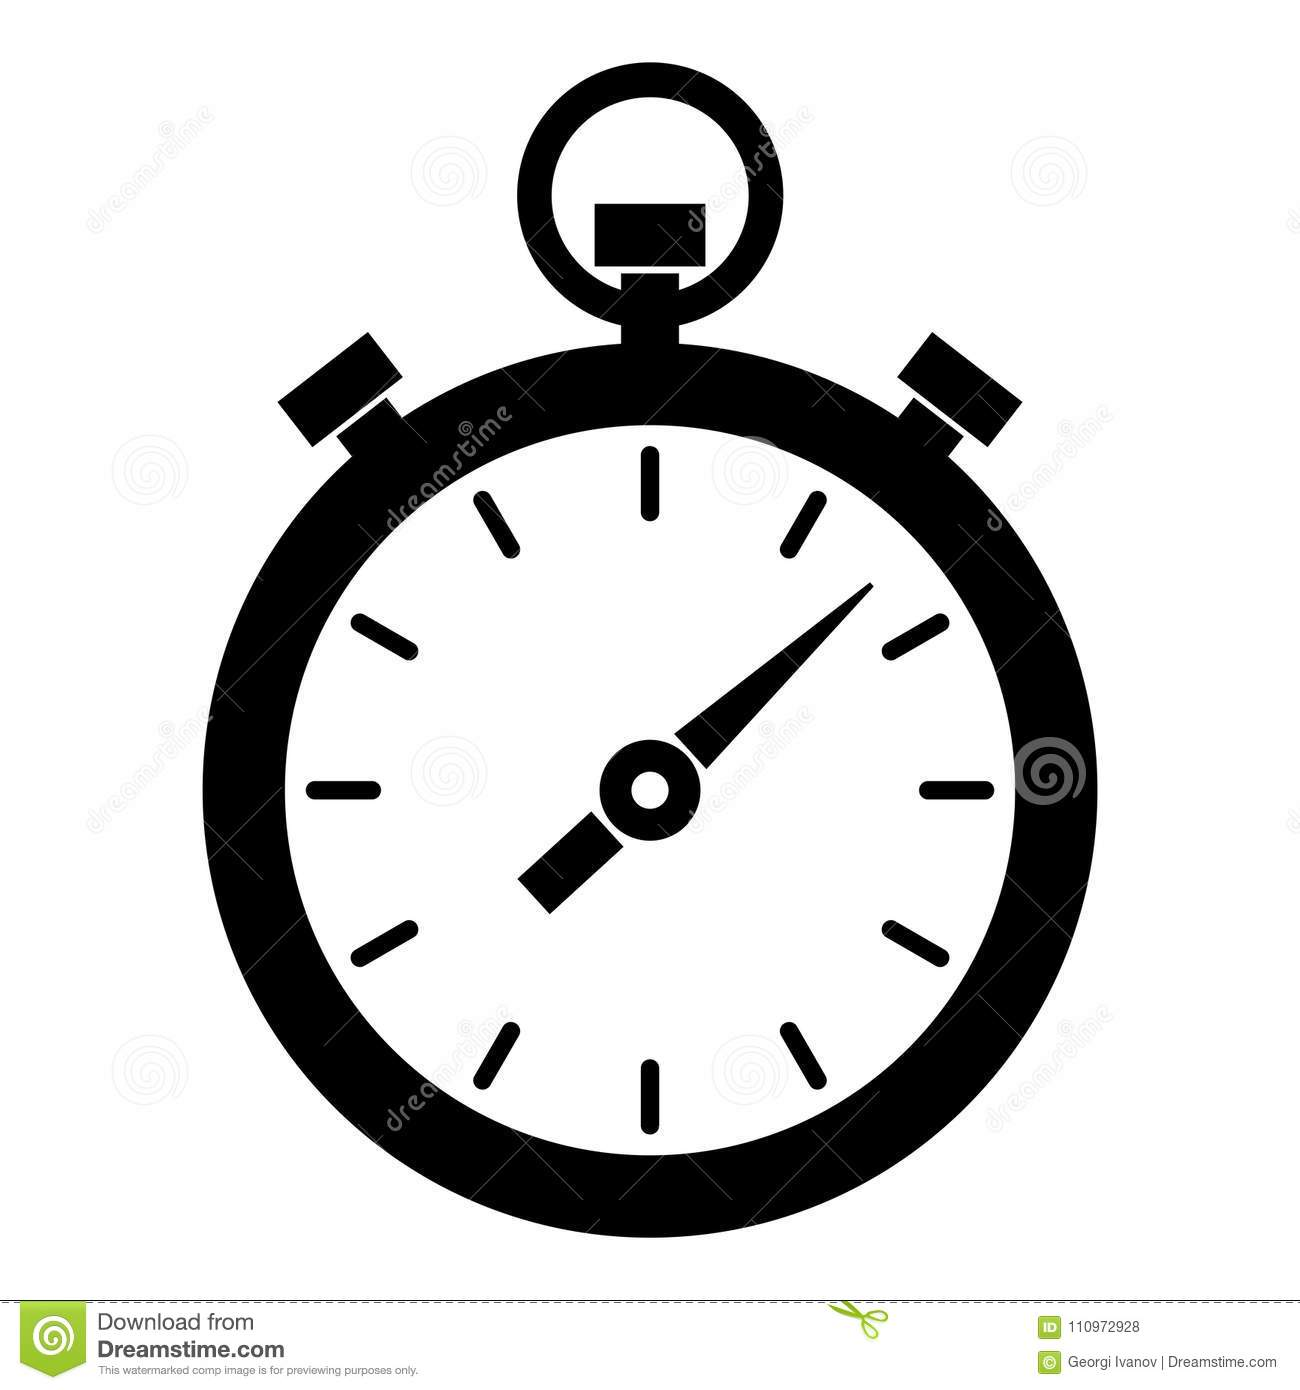 Simple, Black And White Timer/stopwatch Icon  Isolated On White